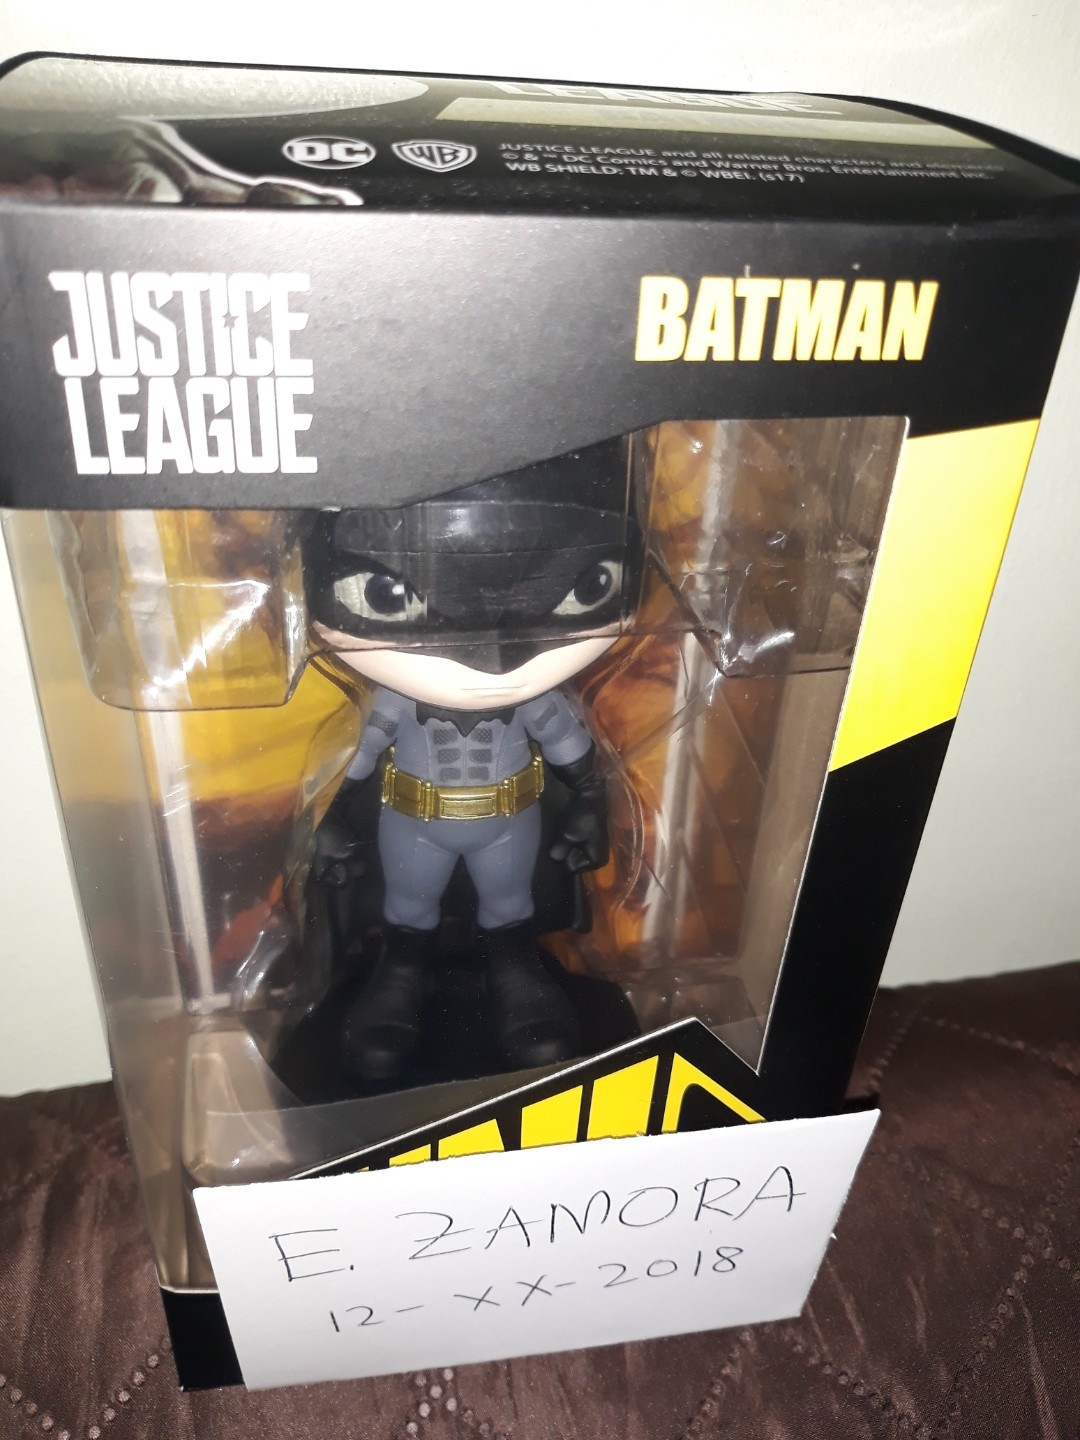 Justice League Heroes Batman Action Figure By Minico Toys Games